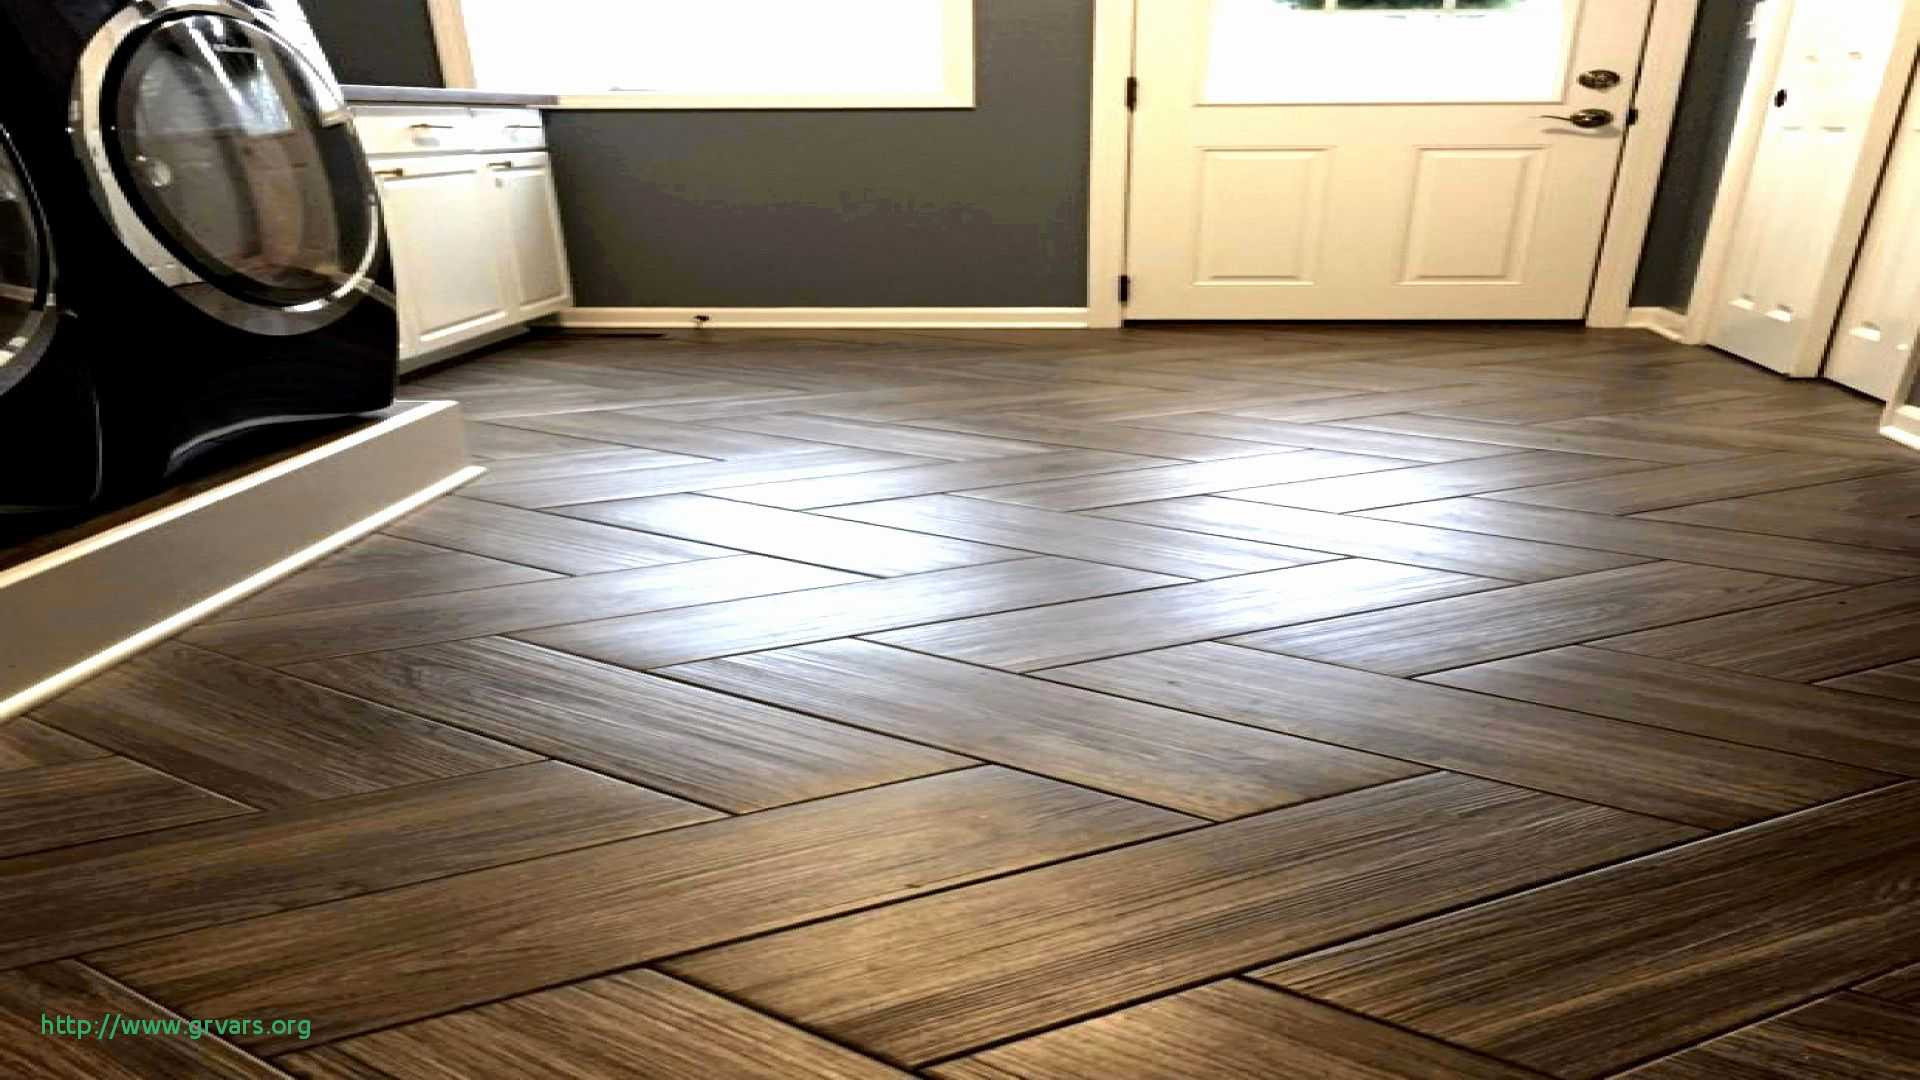 22 Fabulous How Much Does It Cost to Replace Hardwood